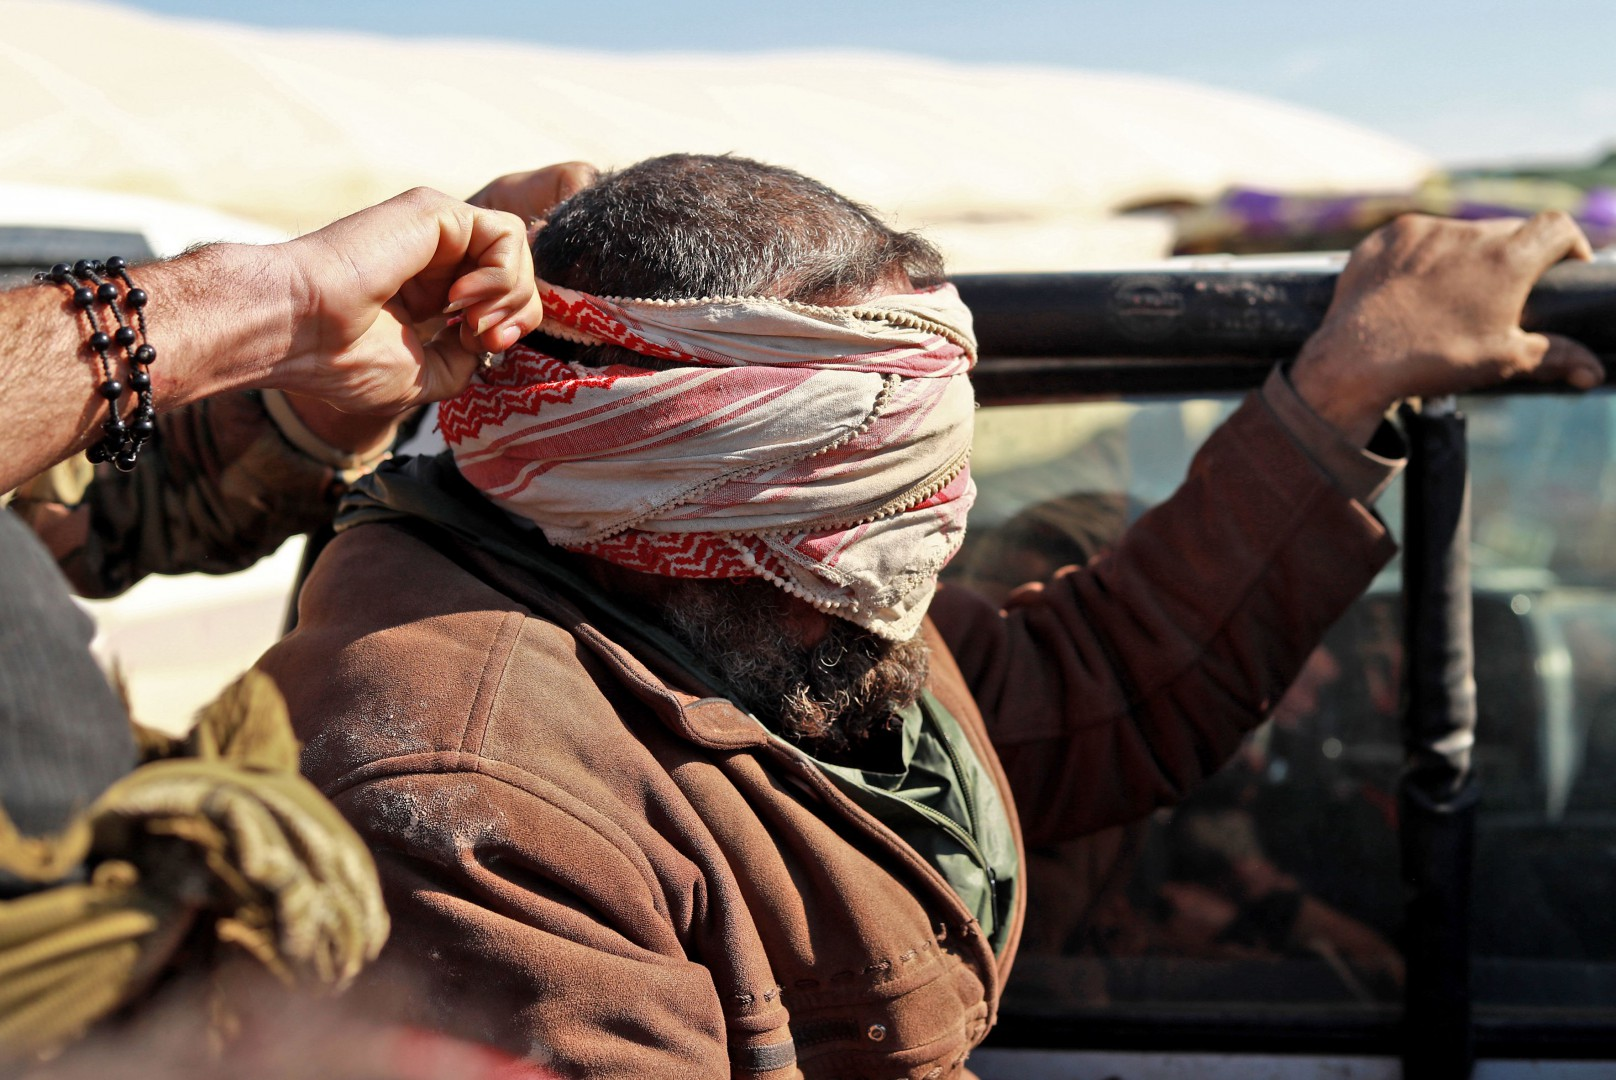 An Alleged Islamic State (IS) group fighters fled from the frontline Syrian village of Baghouz, near the Iraqi border, sits blindfolded in the back of a pickup truck after he was taken into custody by SDF forces for screening, near the Omar oil field in the countryside of the eastern Syrian Deir Ezzor province on January 30, 2019. (Photo by Delil SOULEIMAN / AFP)